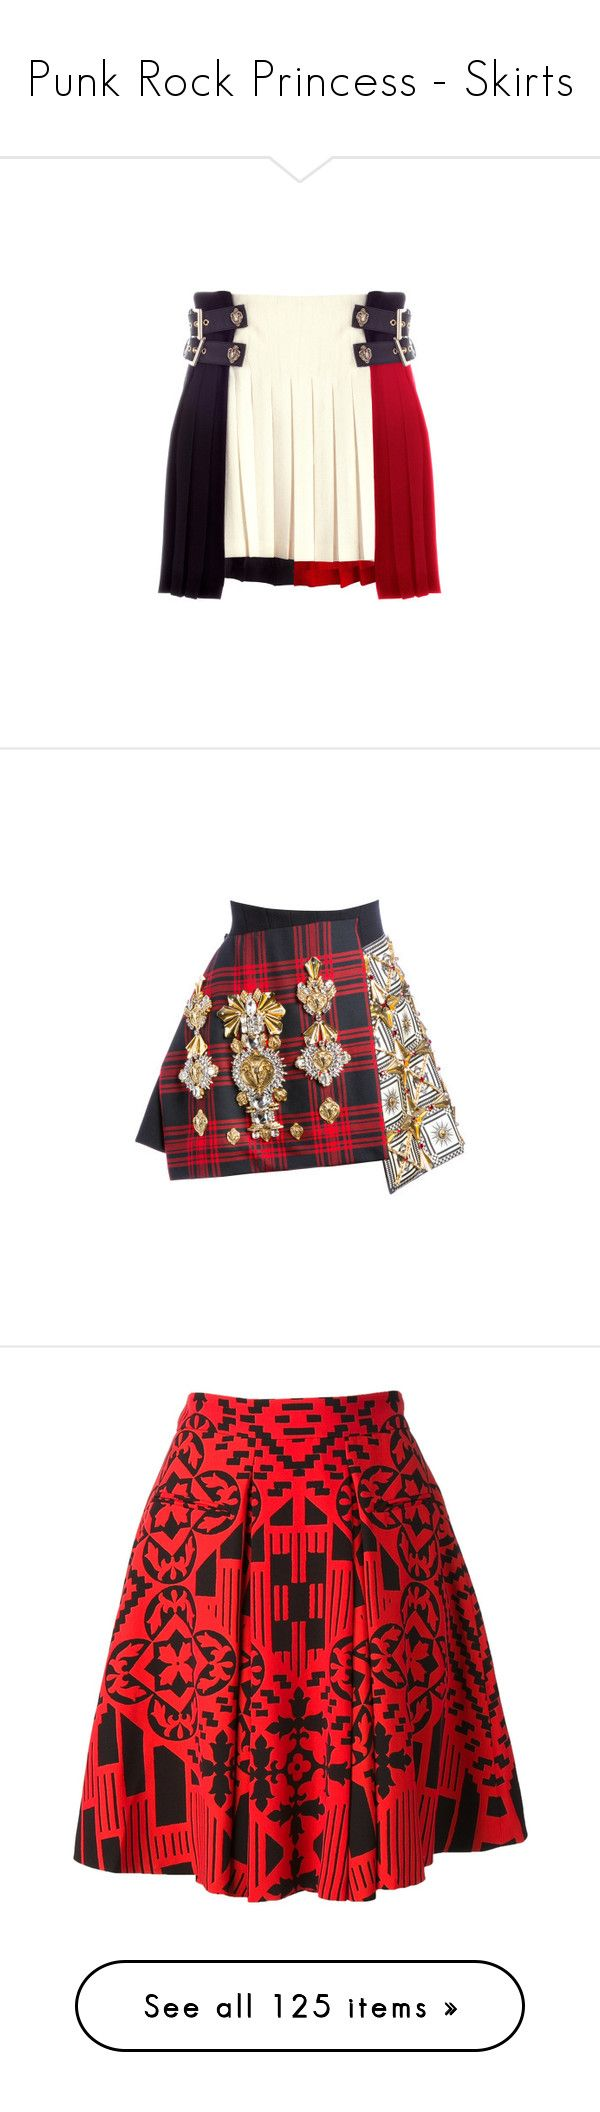 """Punk Rock Princess - Skirts"" by metalheavy ❤ liked on Polyvore featuring skirts, bottoms, faldas, white short skirt, crepe skirt, white wool skirt, wool skirt, white skirt, red and plaid skirt"